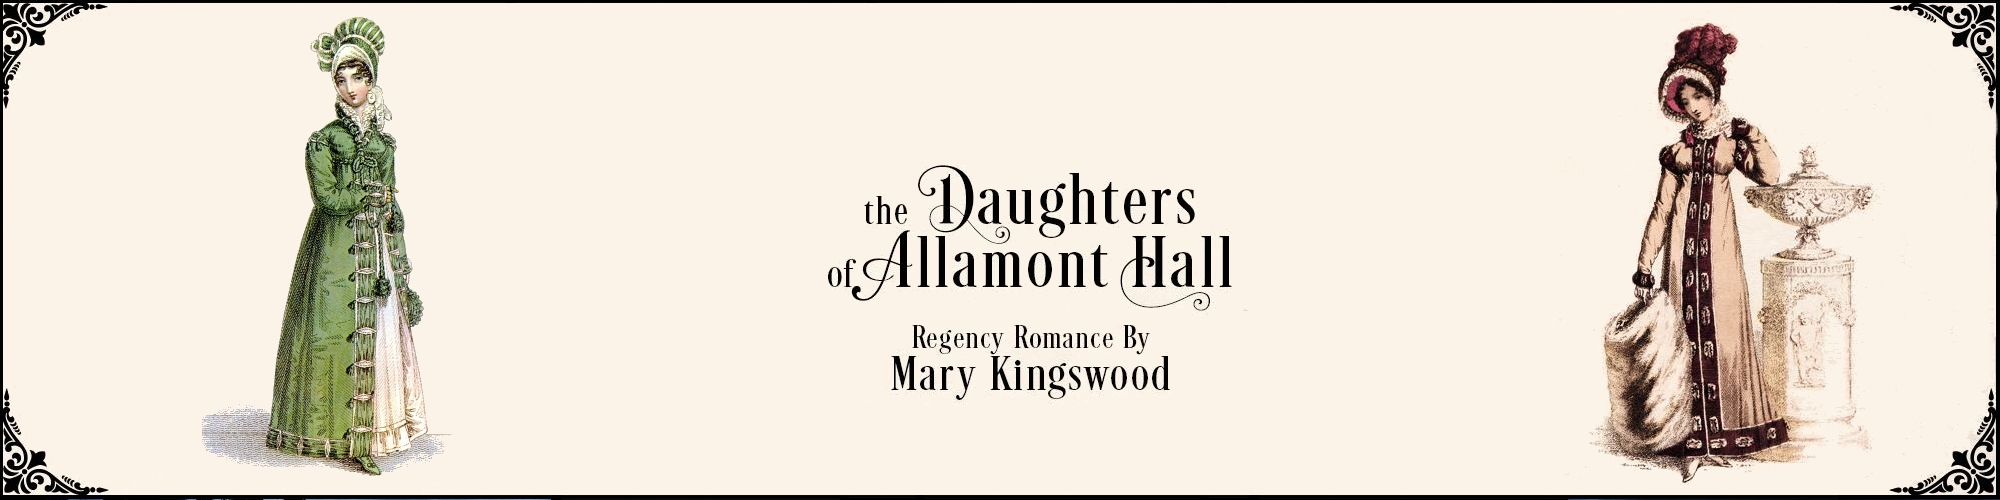 Mary Kingswood